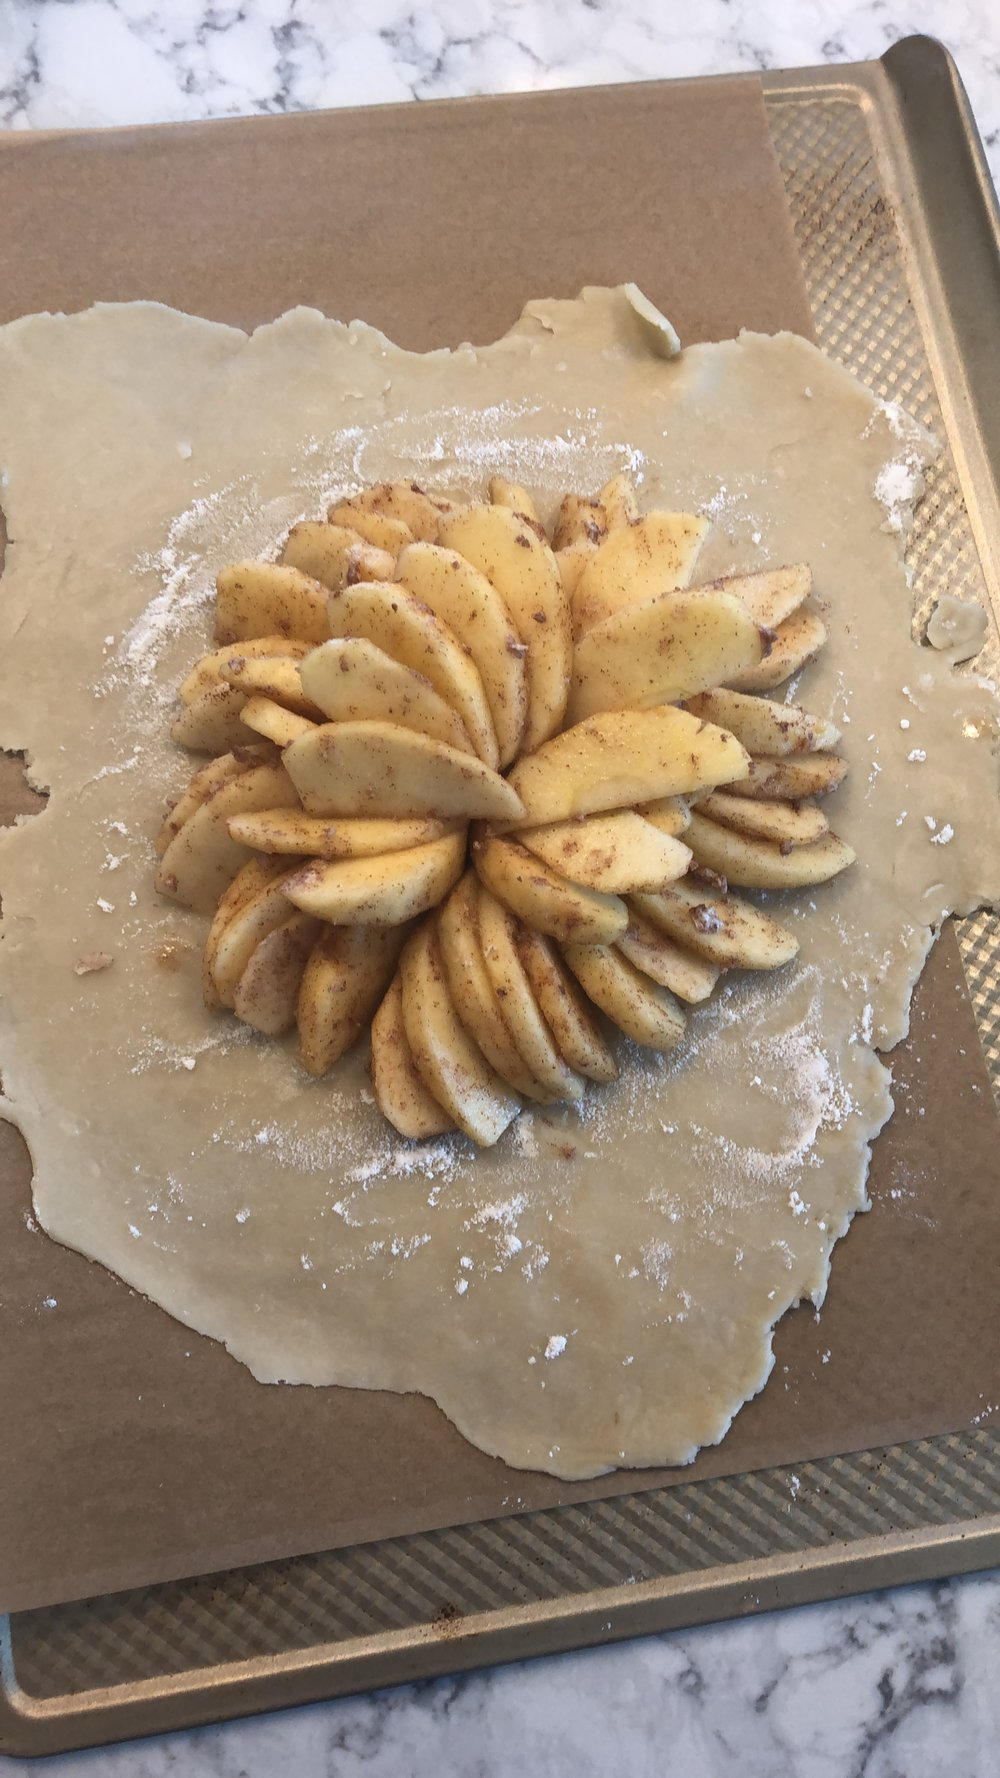 After the apples have been tossed in the sugar, cinnamon and butter, place them in a pretty pattern on the dough. Fold up the edges over the apples, brush the egg wash on the dough and sprinkle with additional cinnamon and sugar.